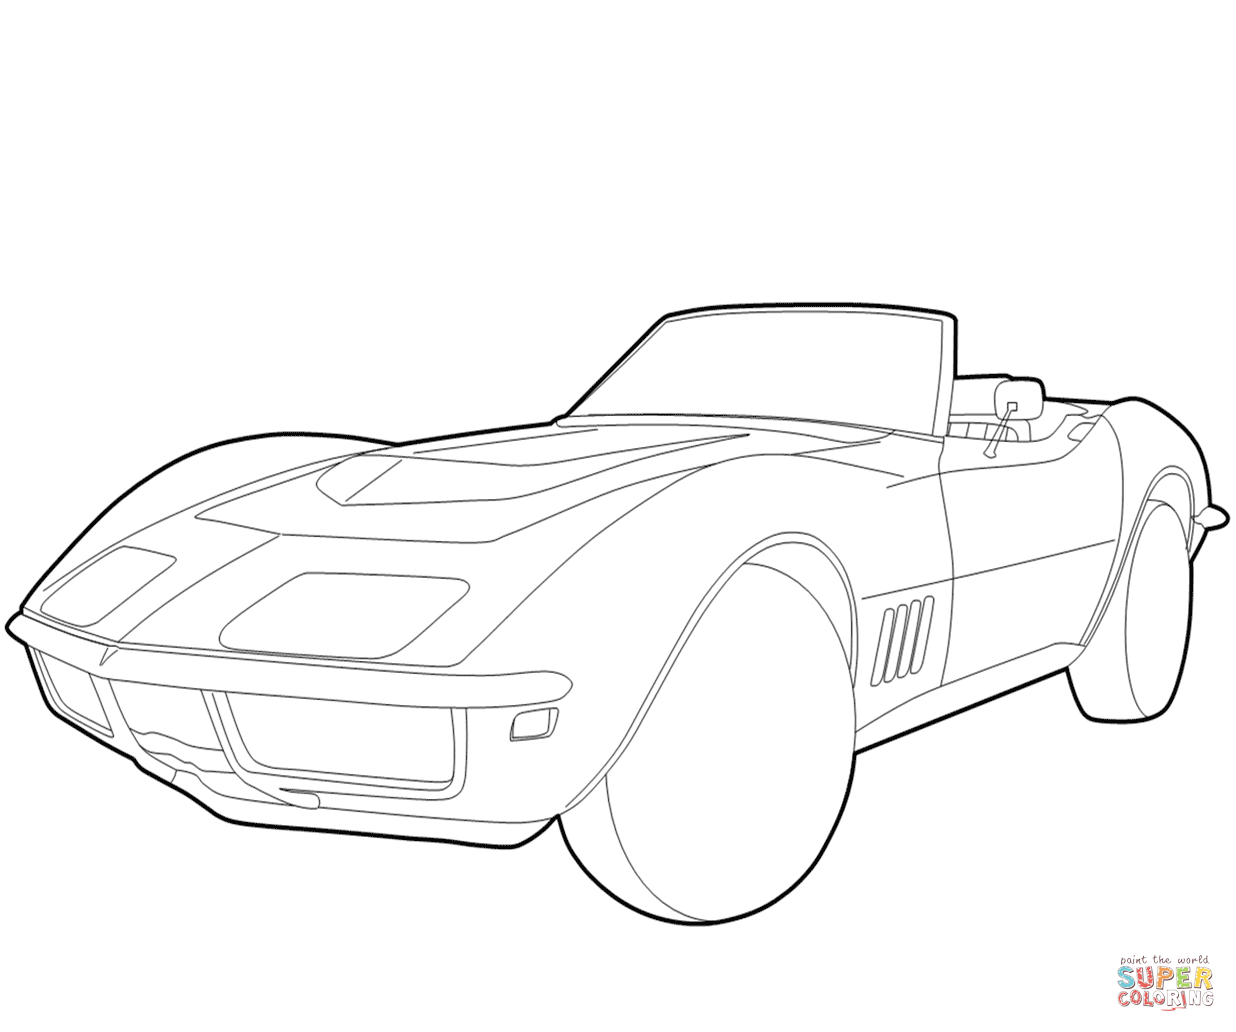 1236x1032 chevy blazer coloring pages color bros